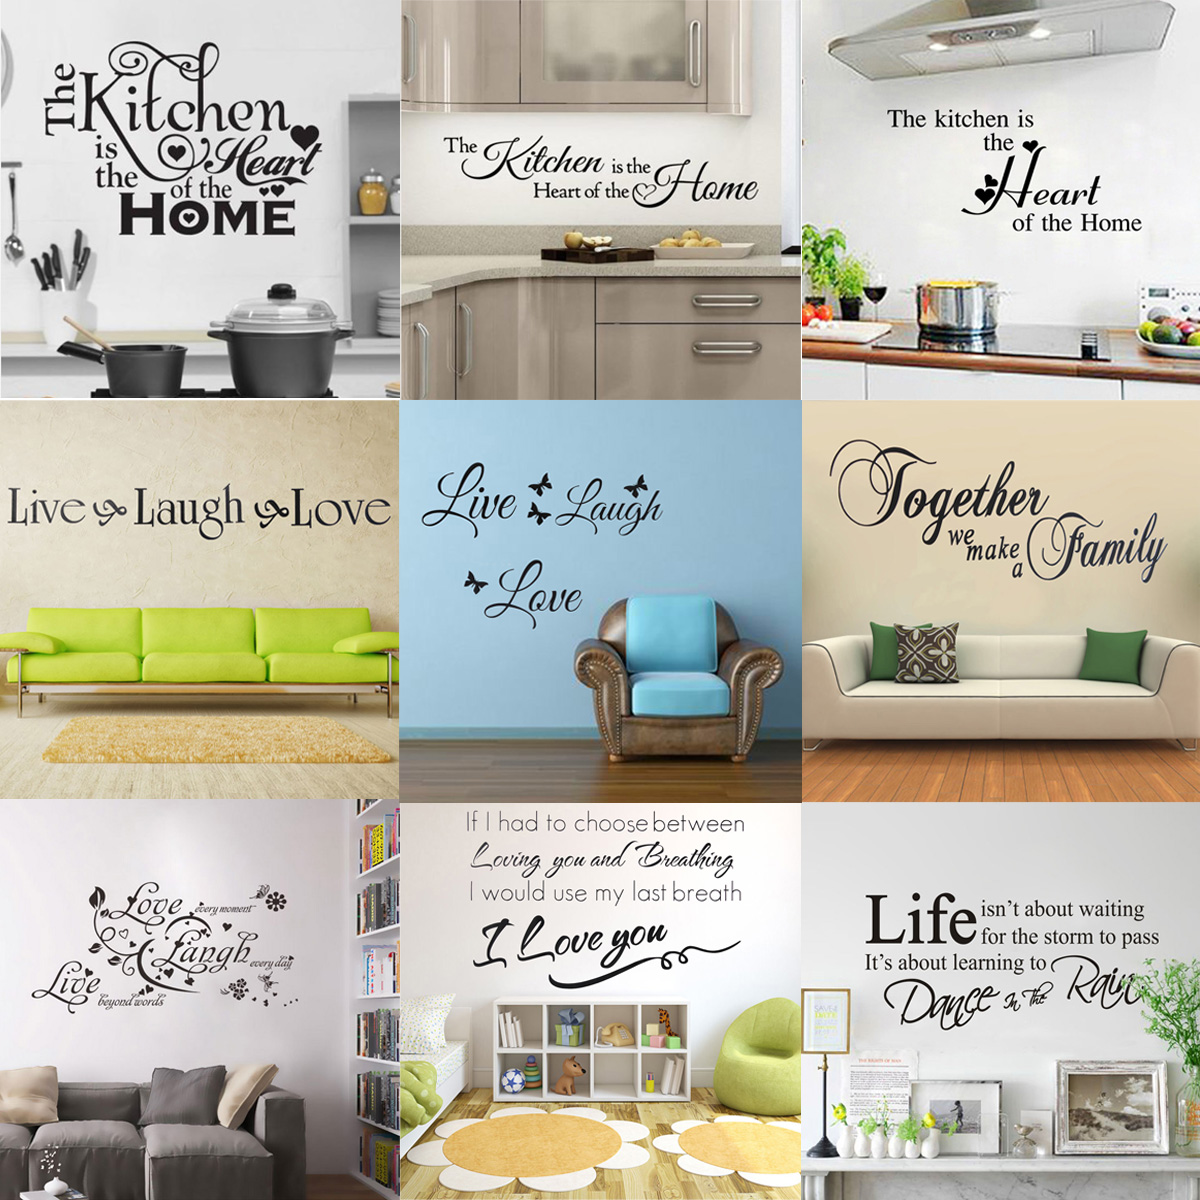 Kitchen wall decals words 6795653 - metabo01.info